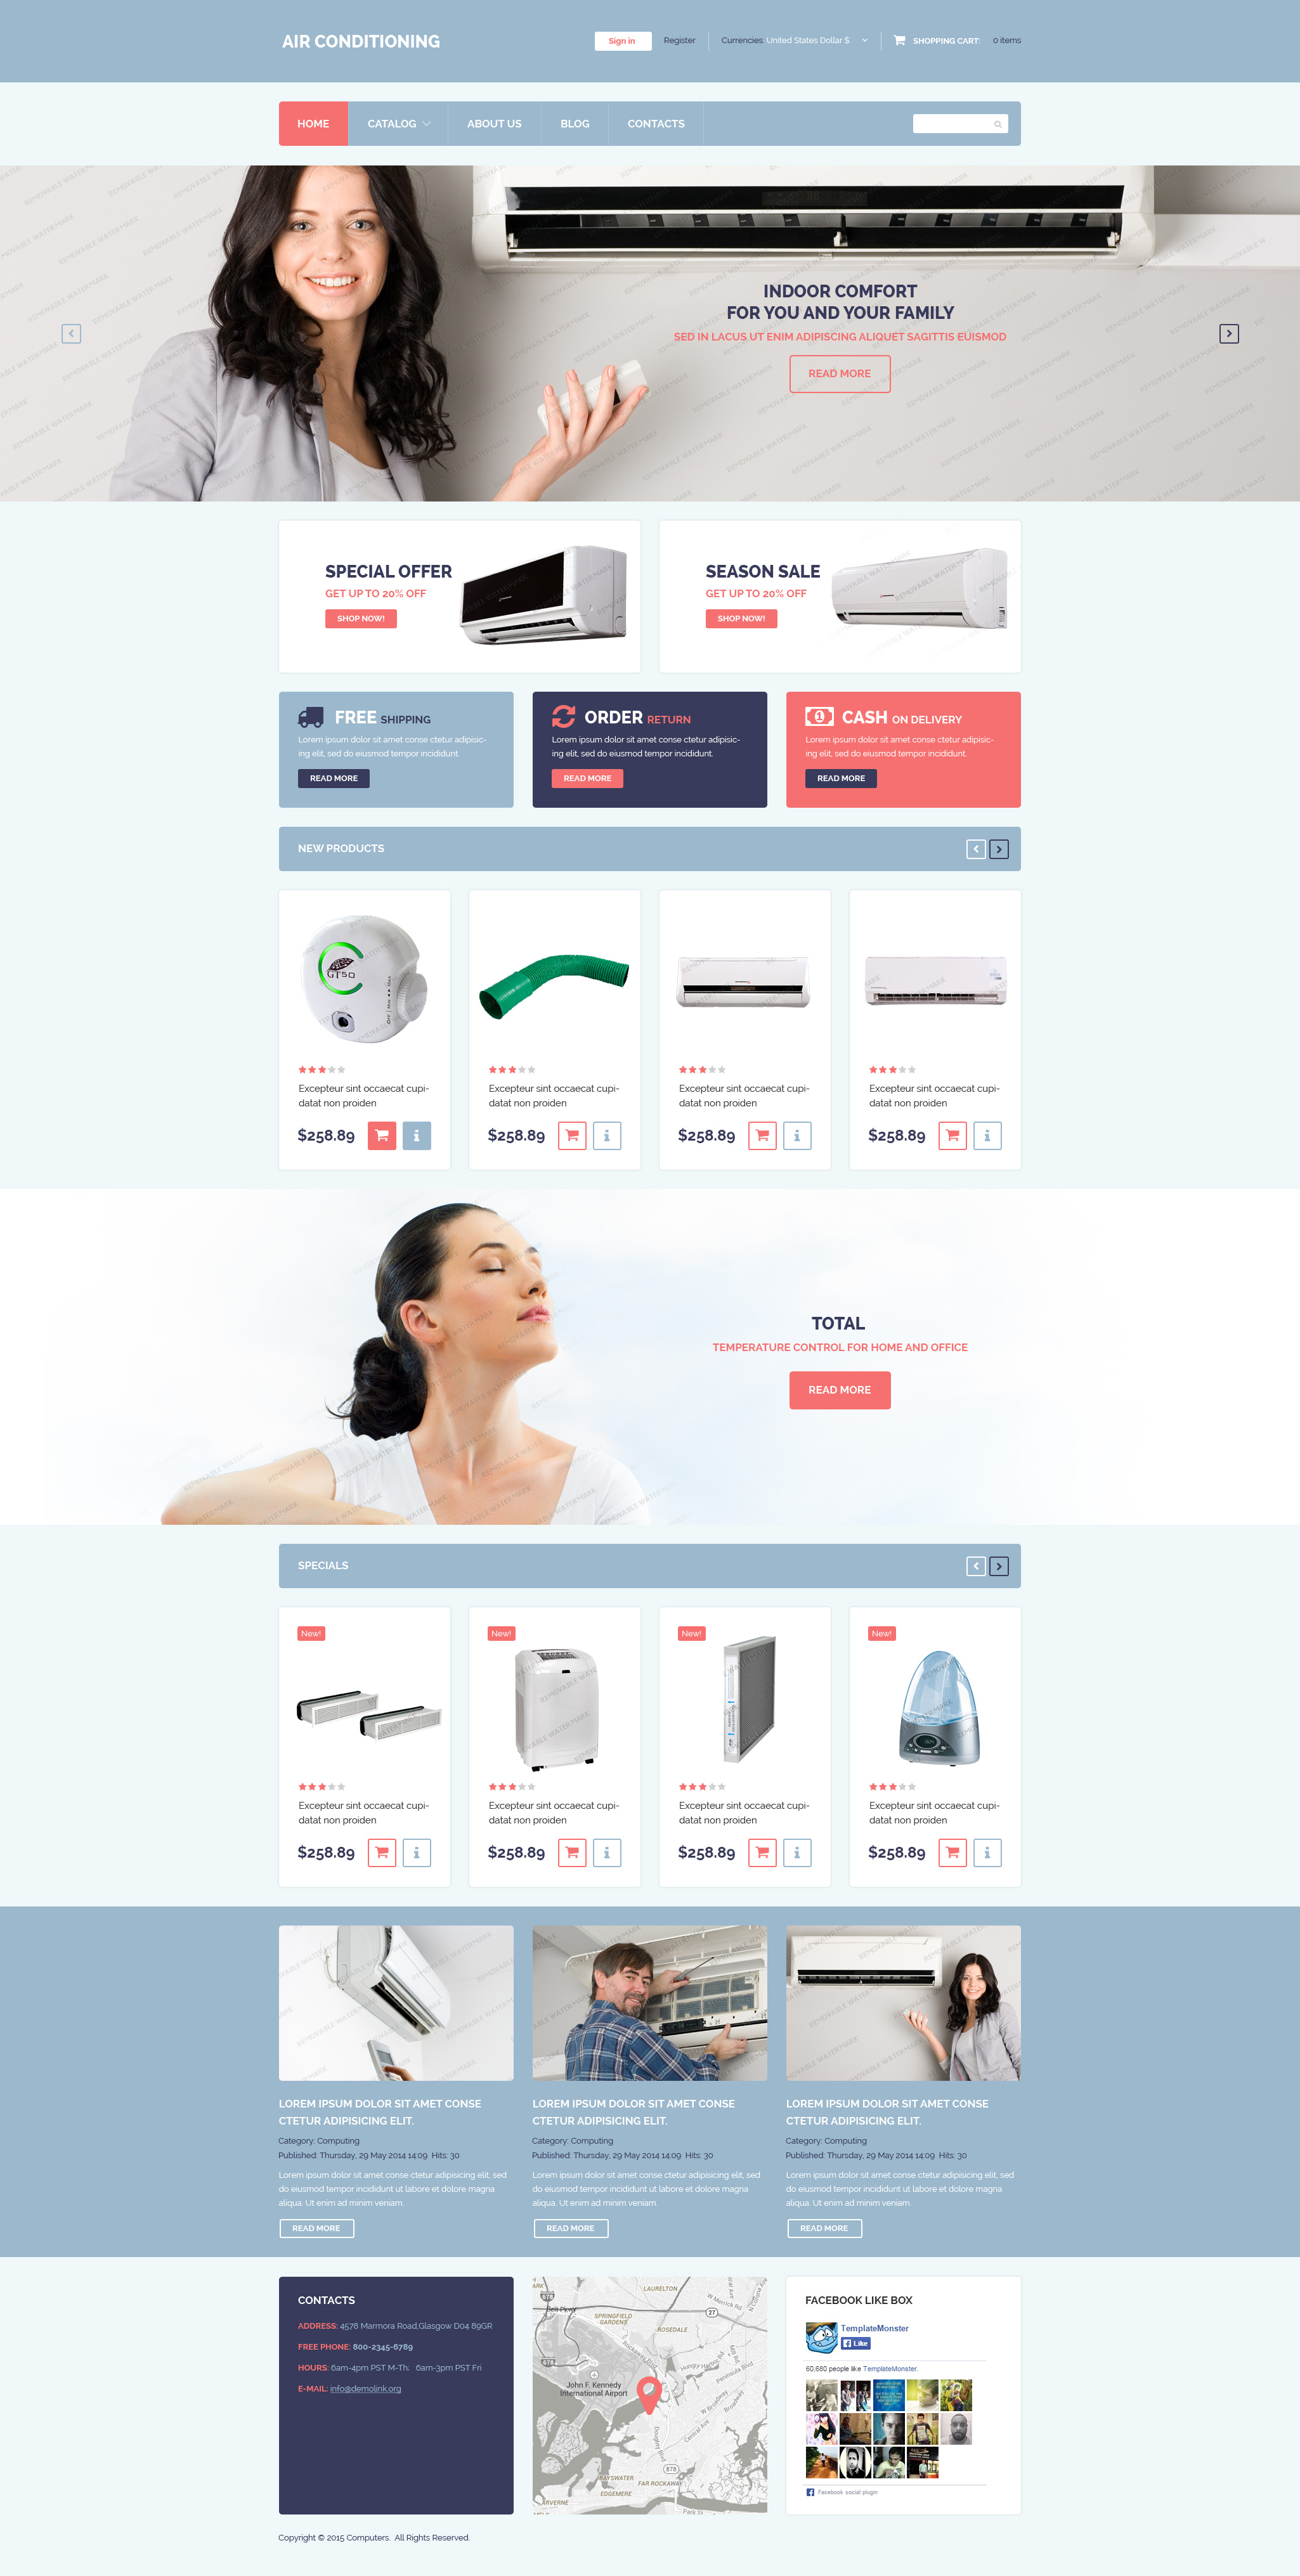 The Air Conditioning VirtueMart Design 53167, one of the best VirtueMart templates of its kind (most popular, maintenance services), also known as air conditioning VirtueMart template, comfort VirtueMart template, fresh VirtueMart template, wind VirtueMart template, cooler company VirtueMart template, vent VirtueMart template, ventilation VirtueMart template, conditioner VirtueMart template, comfort VirtueMart template, house VirtueMart template, home VirtueMart template, climate VirtueMart template, temperature VirtueMart template, cool VirtueMart template, heat system VirtueMart template, cooling and related with air conditioning, comfort, fresh, wind, cooler company, vent, ventilation, conditioner, comfort, house, home, climate, temperature, cool, heat system, cooling, etc.